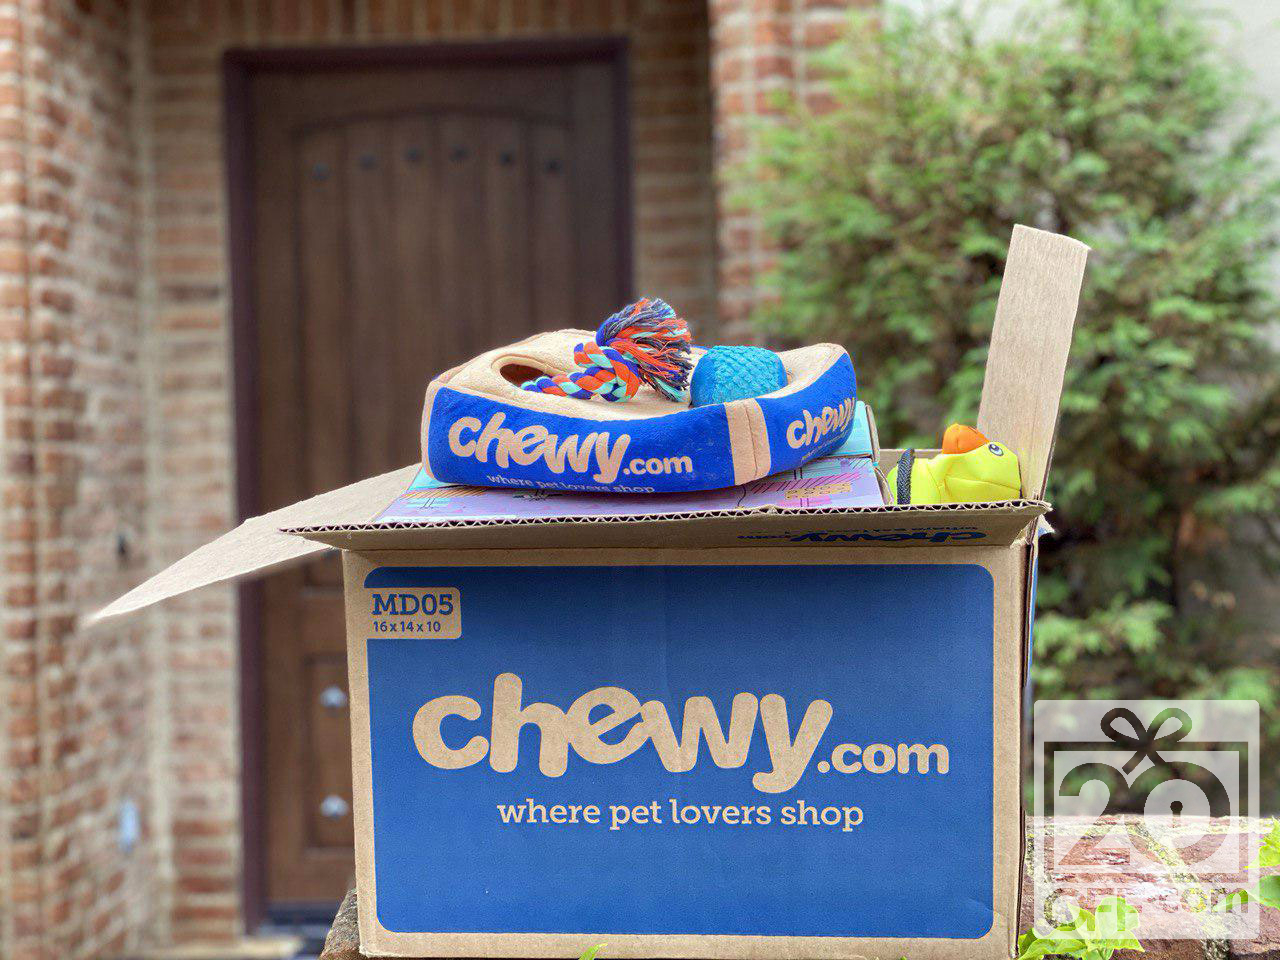 How to Survive With Chewy.com